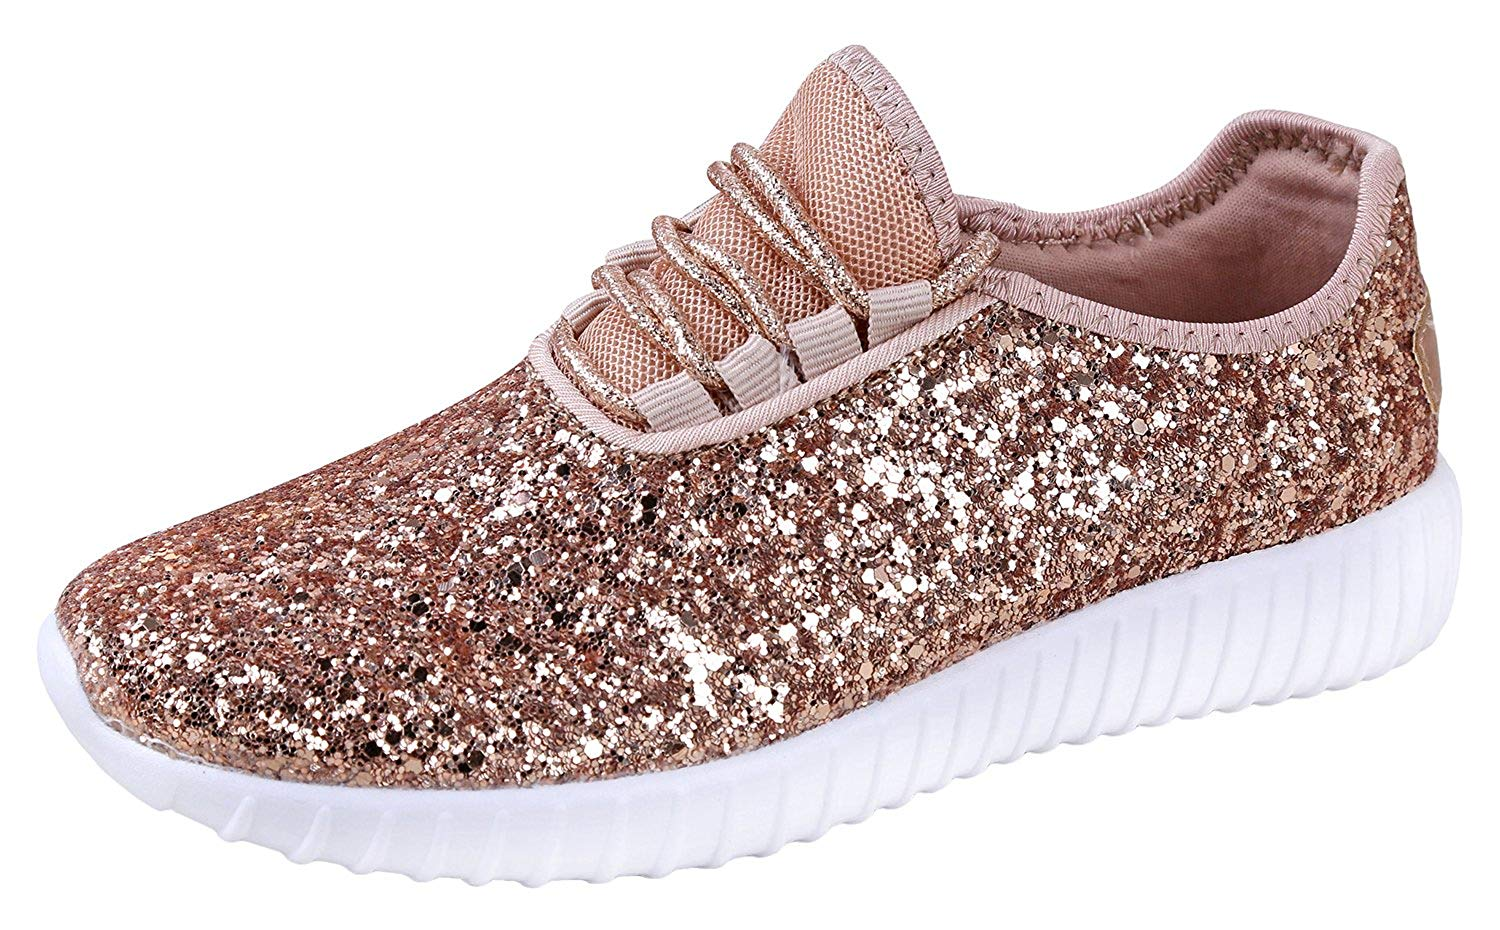 size 40 d56dc c3569 Get Quotations · Foxy Grey Allison Womens Sneakers   Glitter Shoes for  Women   Fashion Sneakers   Sparkly Shoes